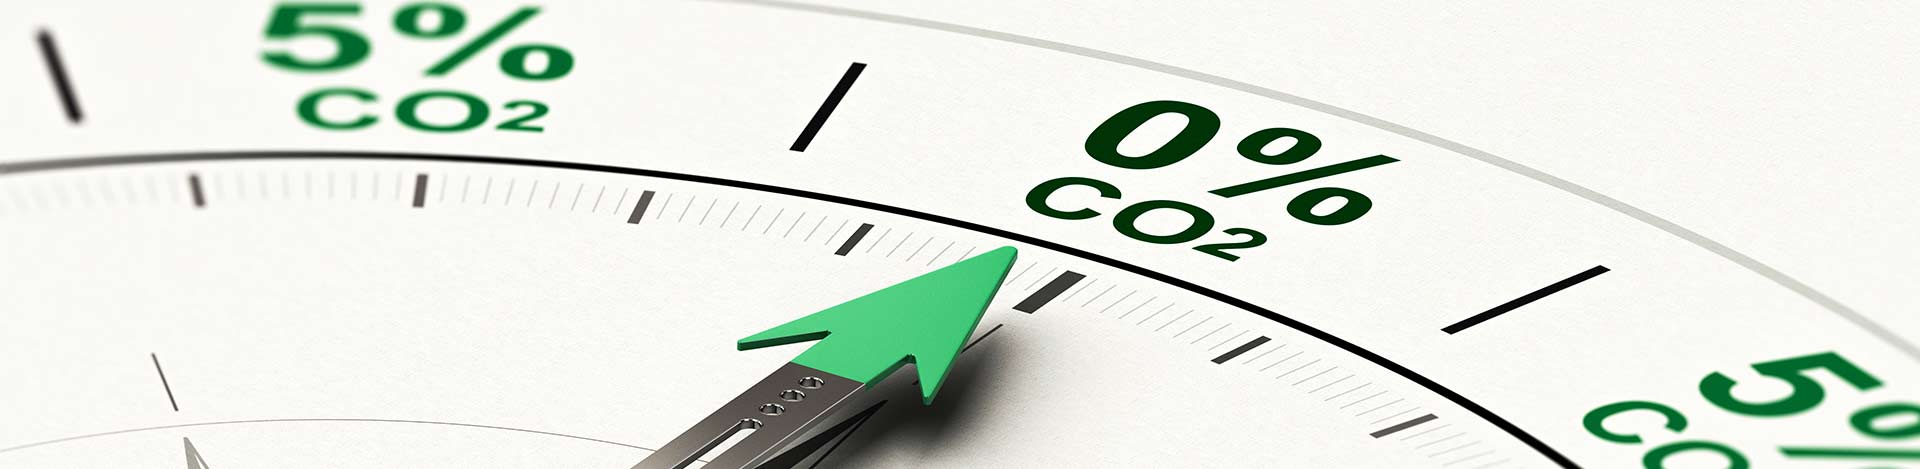 Reducing CO2 emissions and energy costs